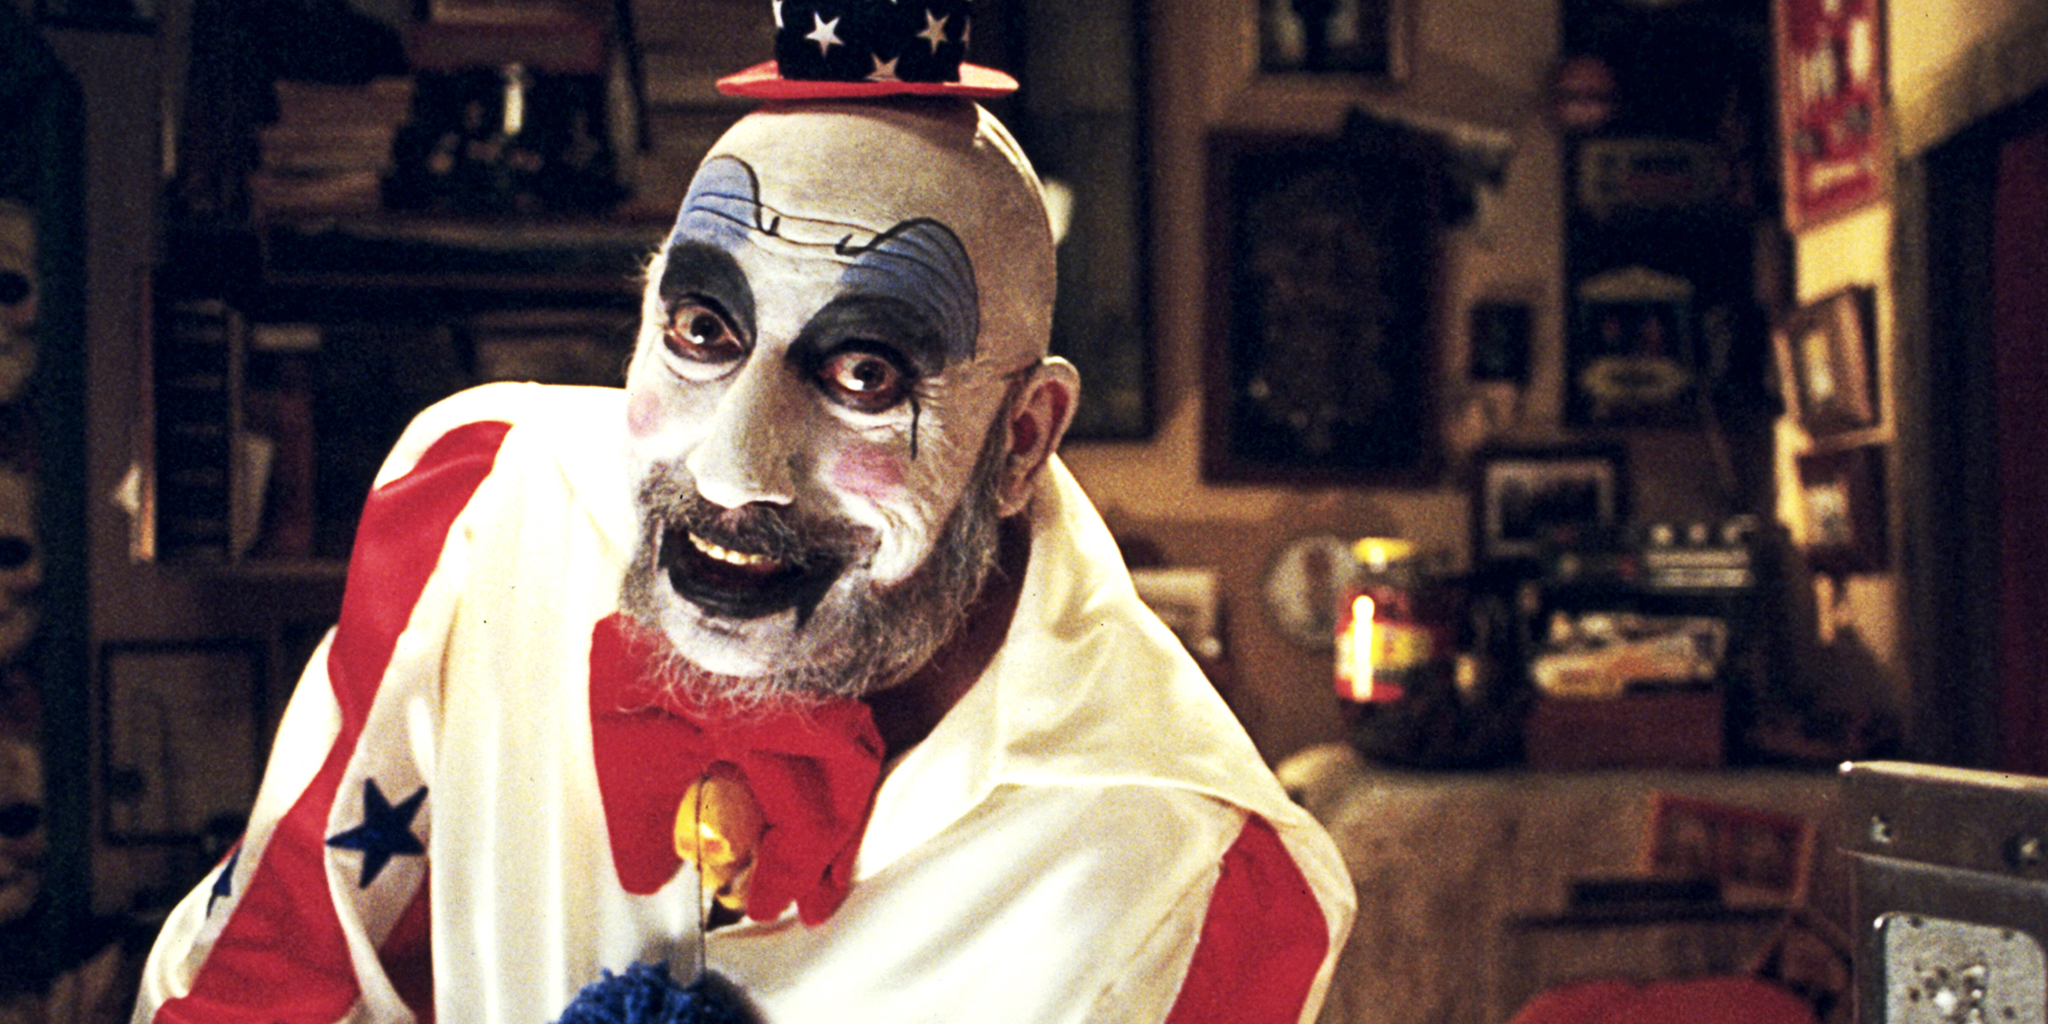 Horror icon Sid Haig, actor from 'House of 1000 Corpses' has died at age 80